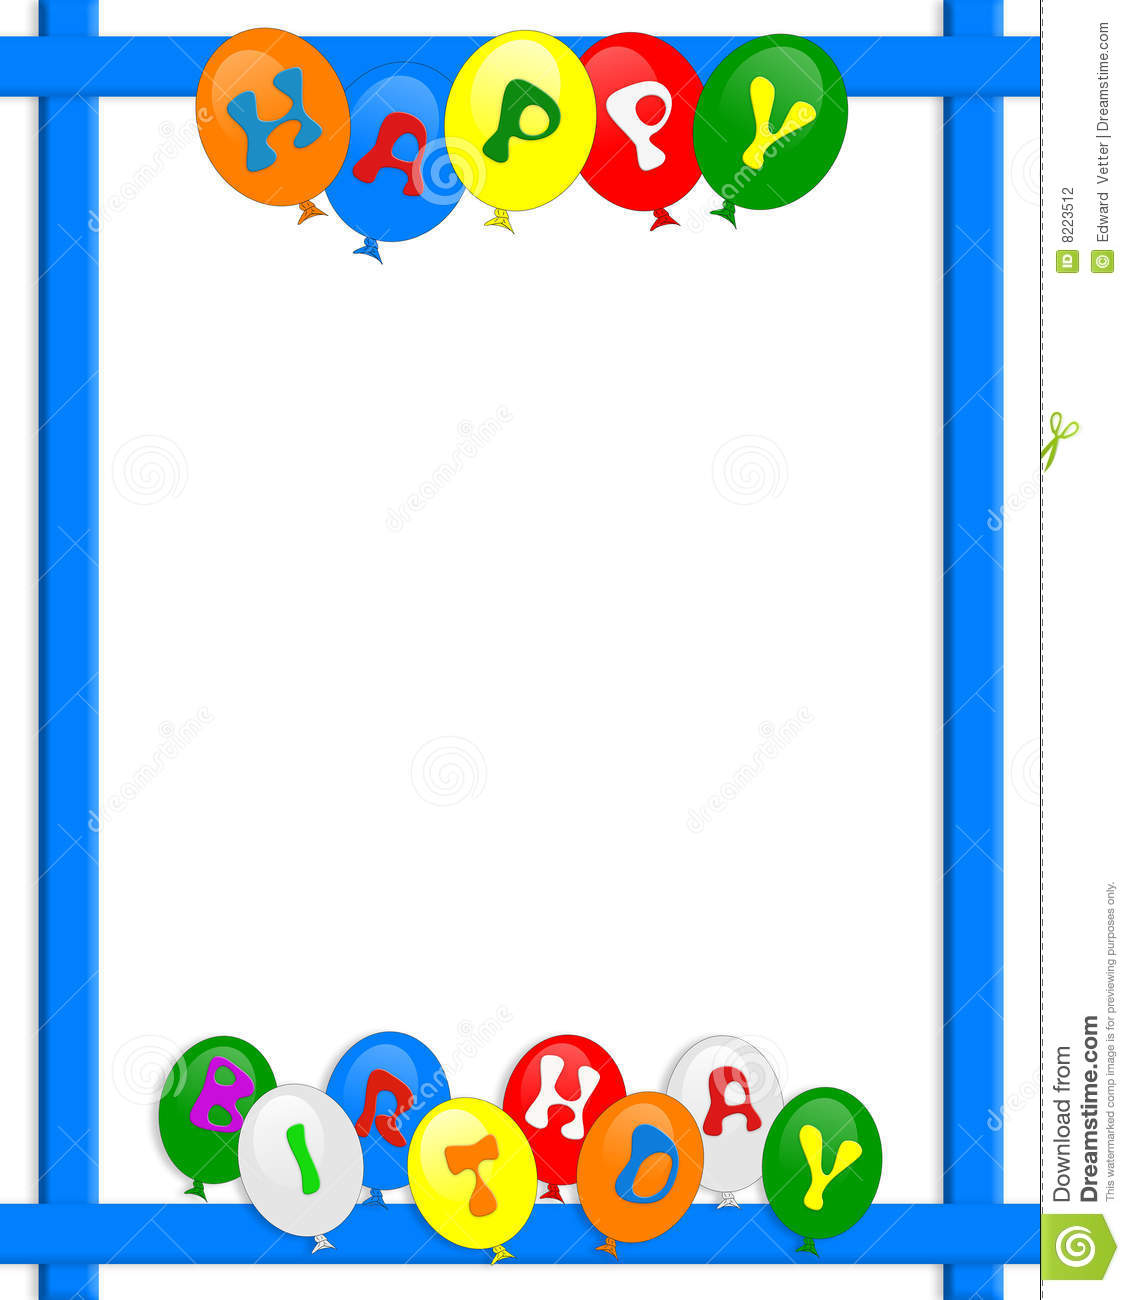 birthday borders and backgrounds ; happy-birthday-balloons-border-frame-8223512